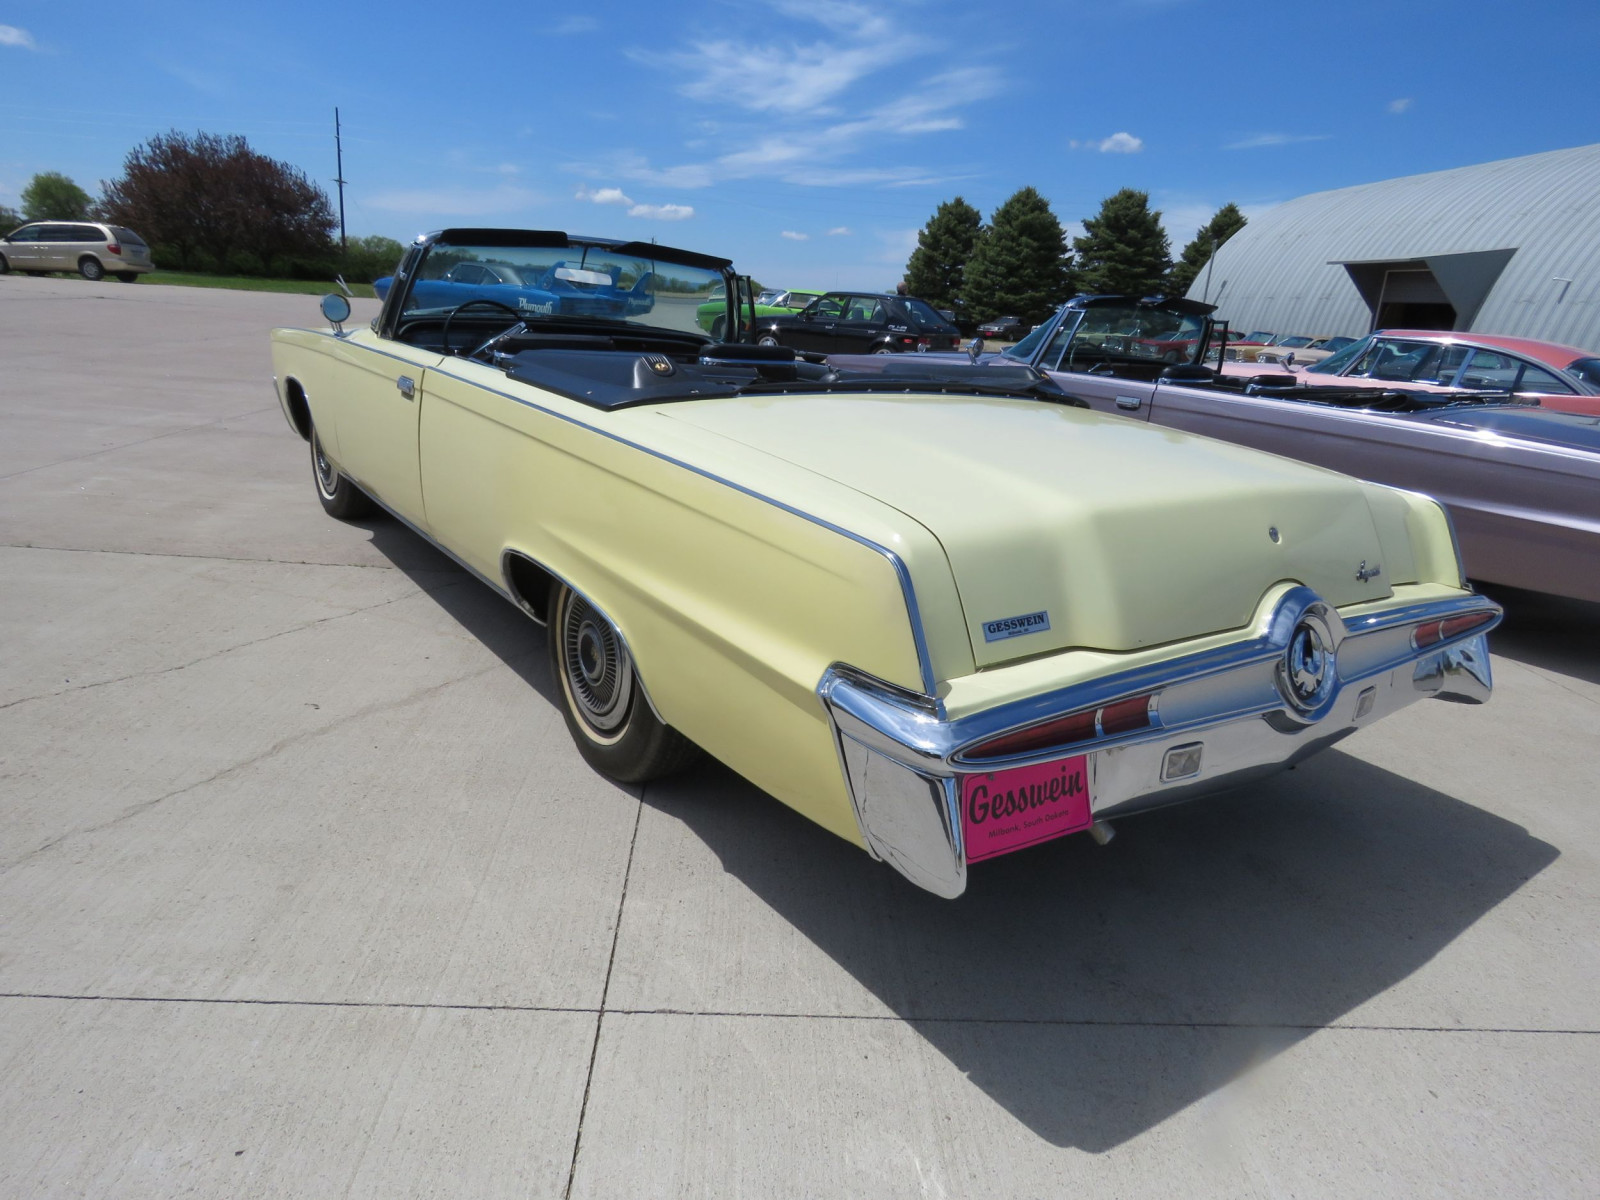 1966 Chrysler Imperial Crown Convertible - Image 8